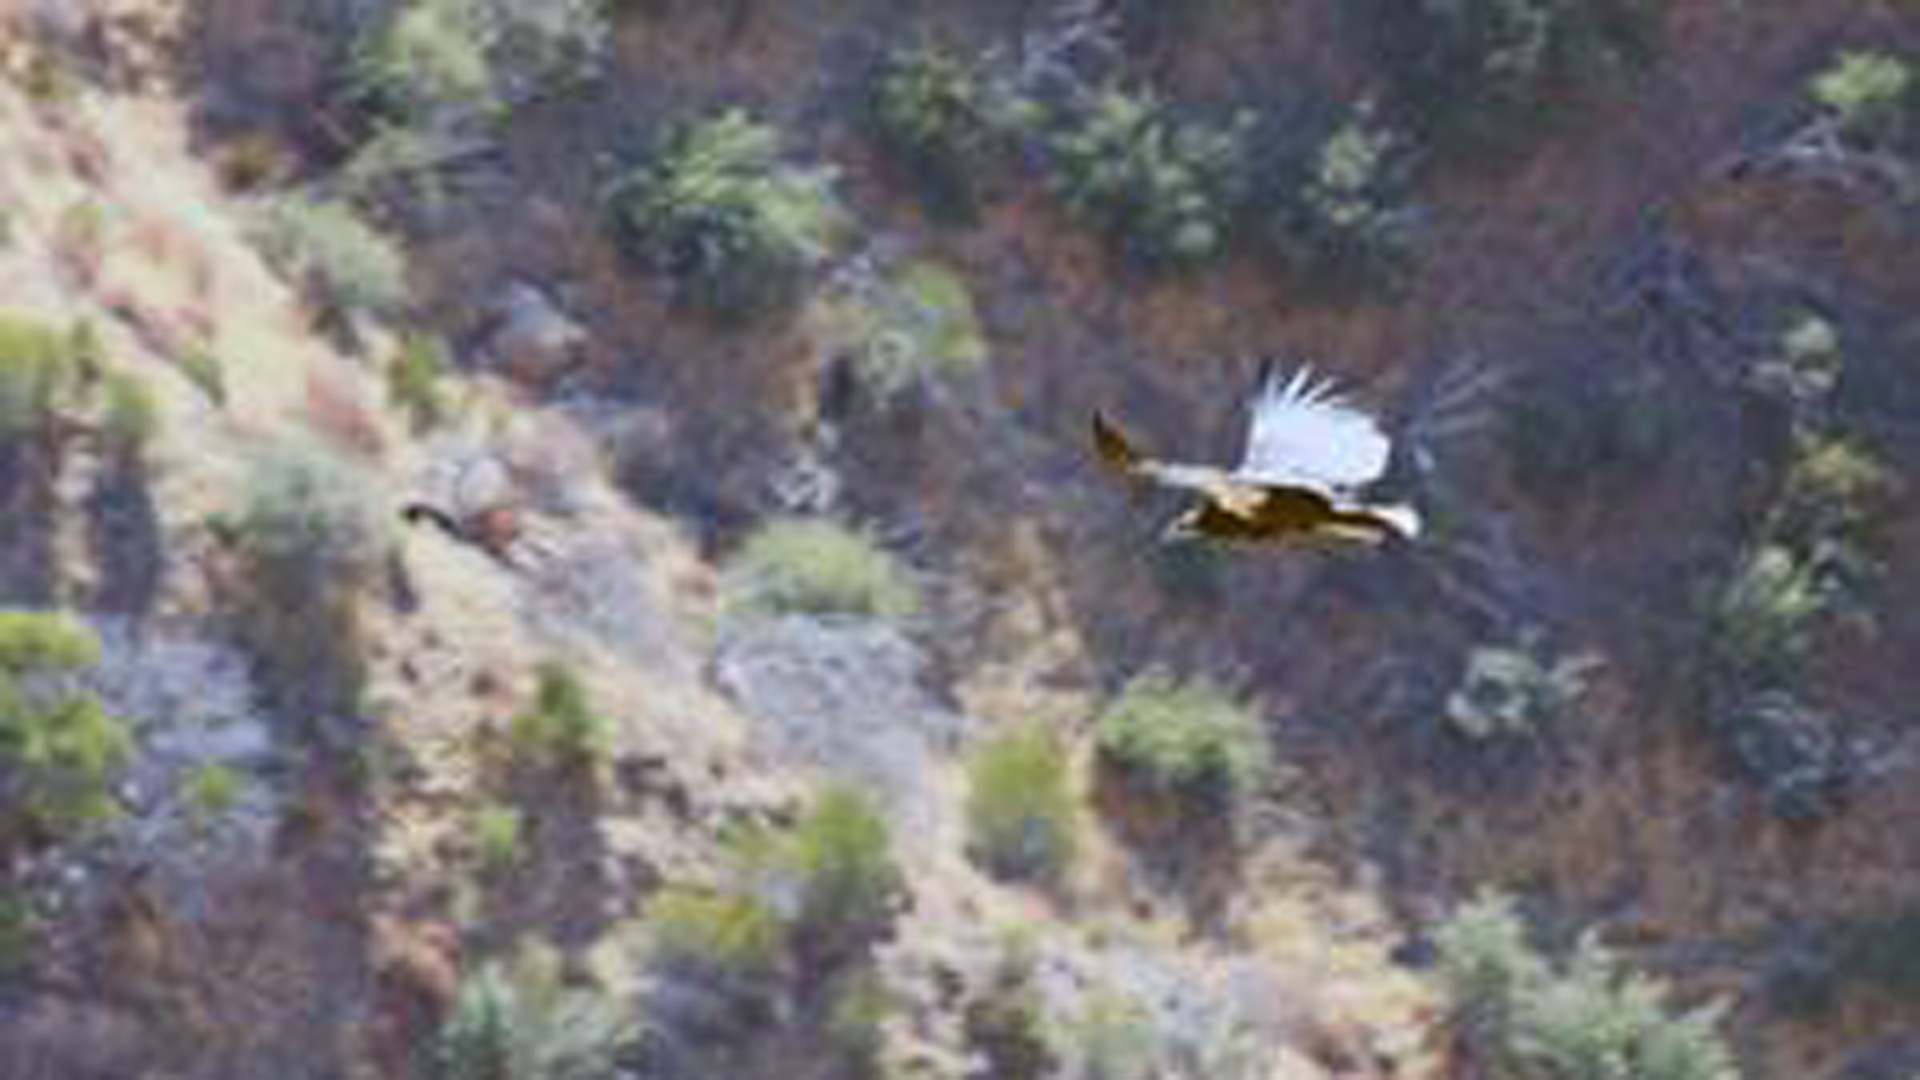 California condor 933 successfully fledges in Santa Barbara County. (Credit: Santa Barbara Zoo via U.S. Fish and Wildlife Service)